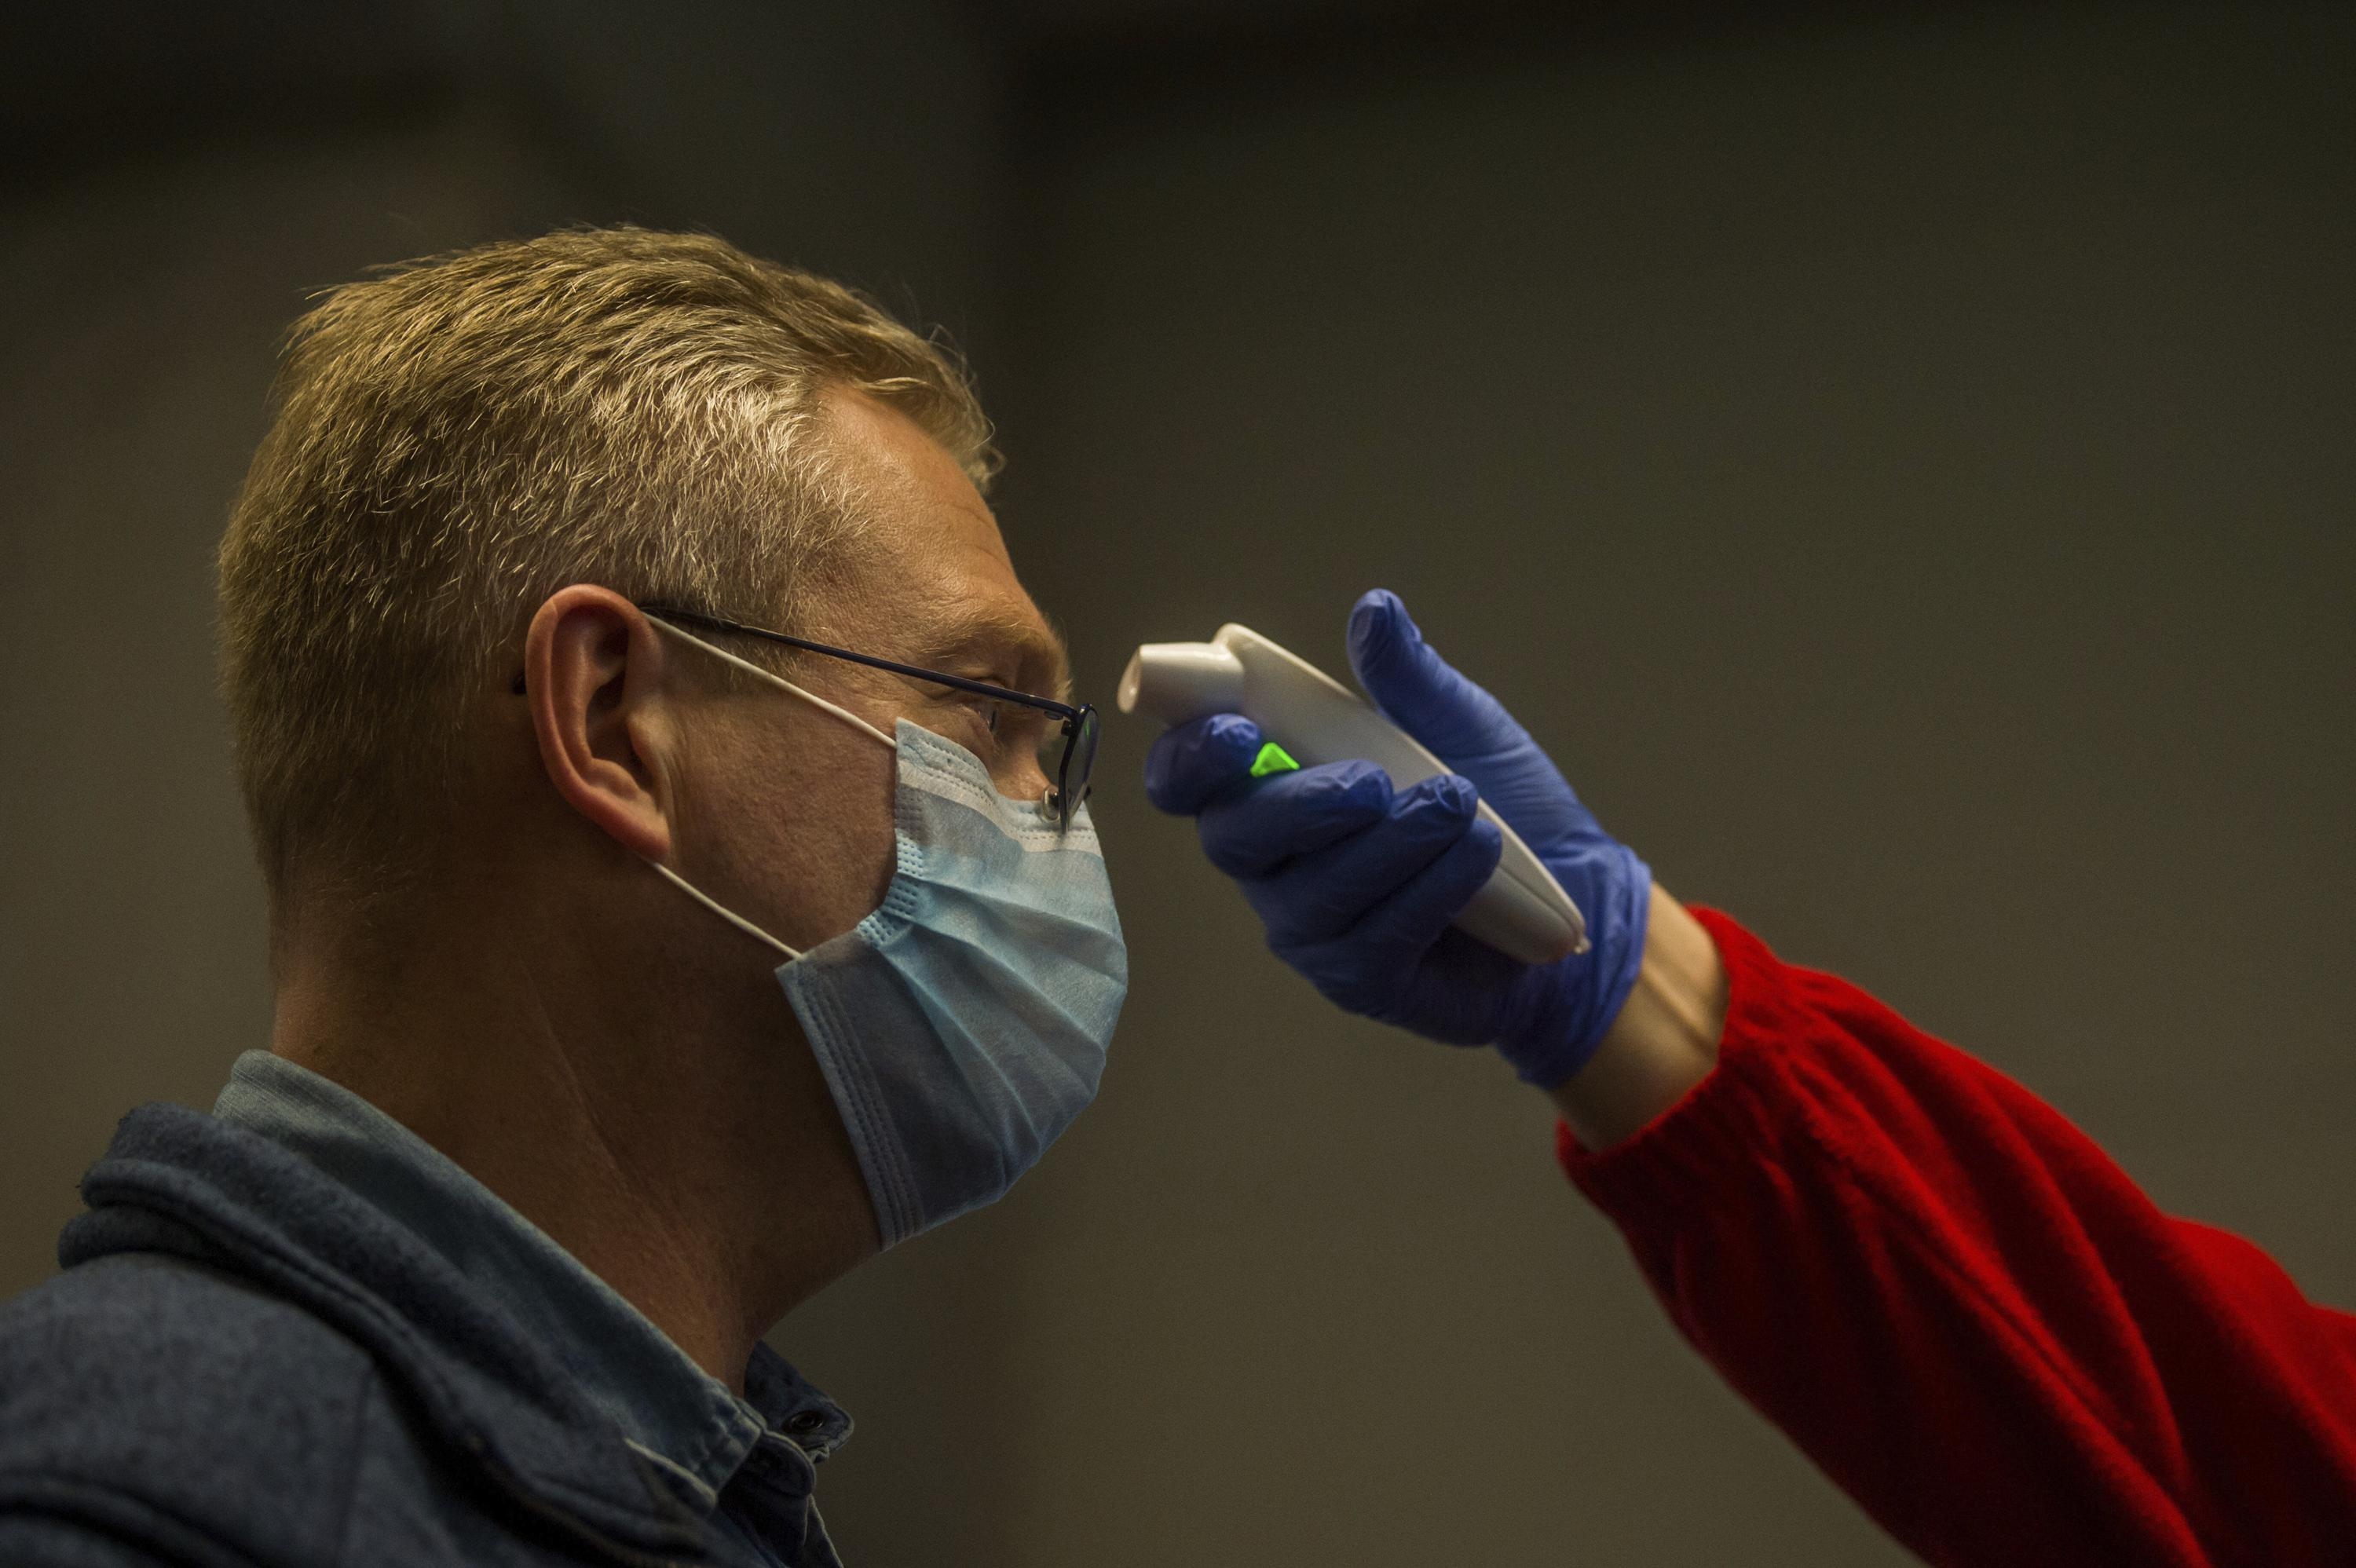 New virus cases in UK, Germany, Italy put Europe total at 31